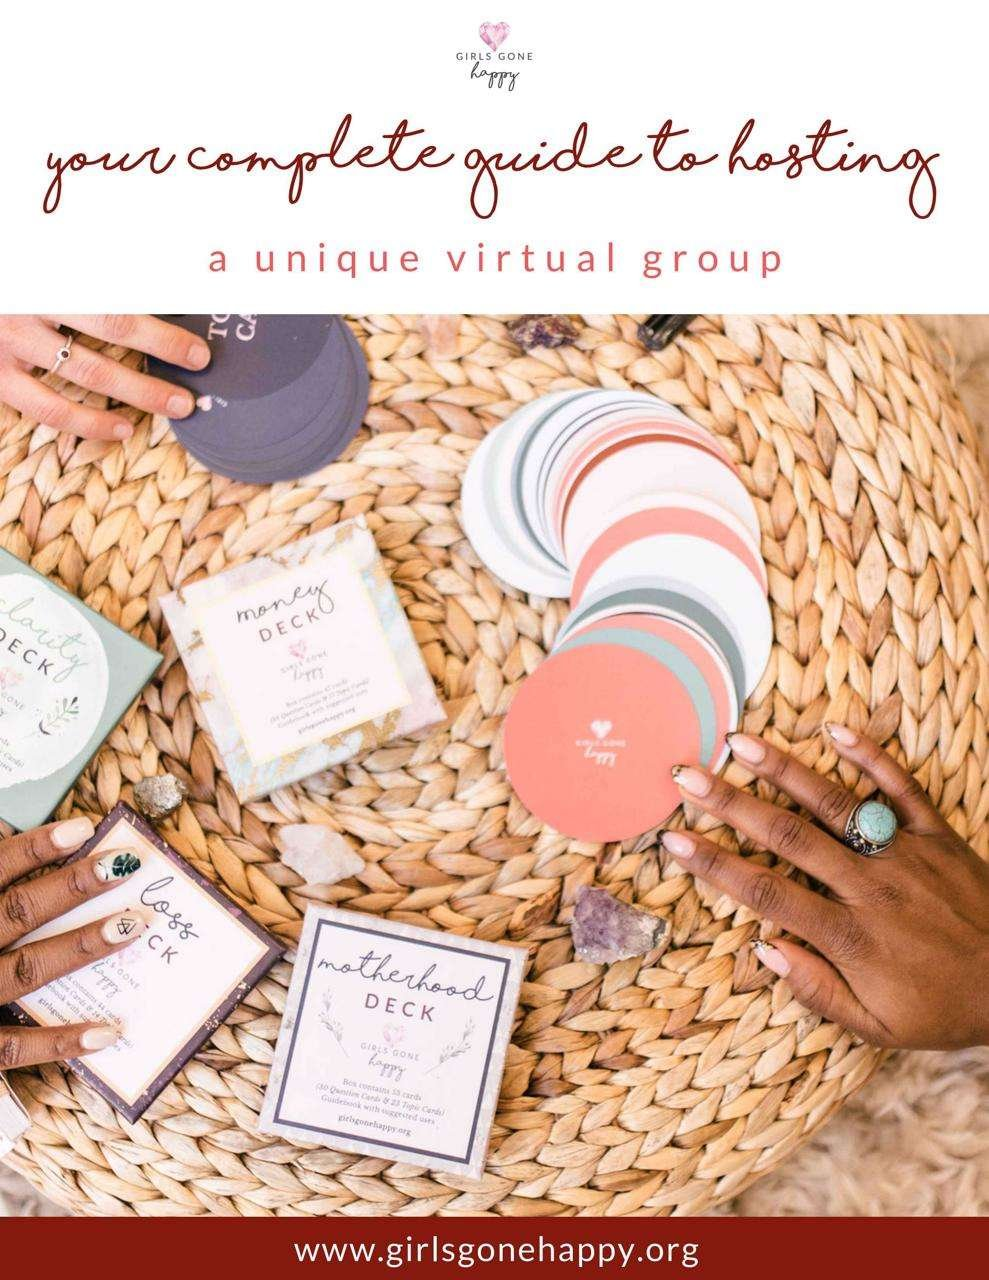 Ho to Host a Girls Gone Happy Virtual Group Guide